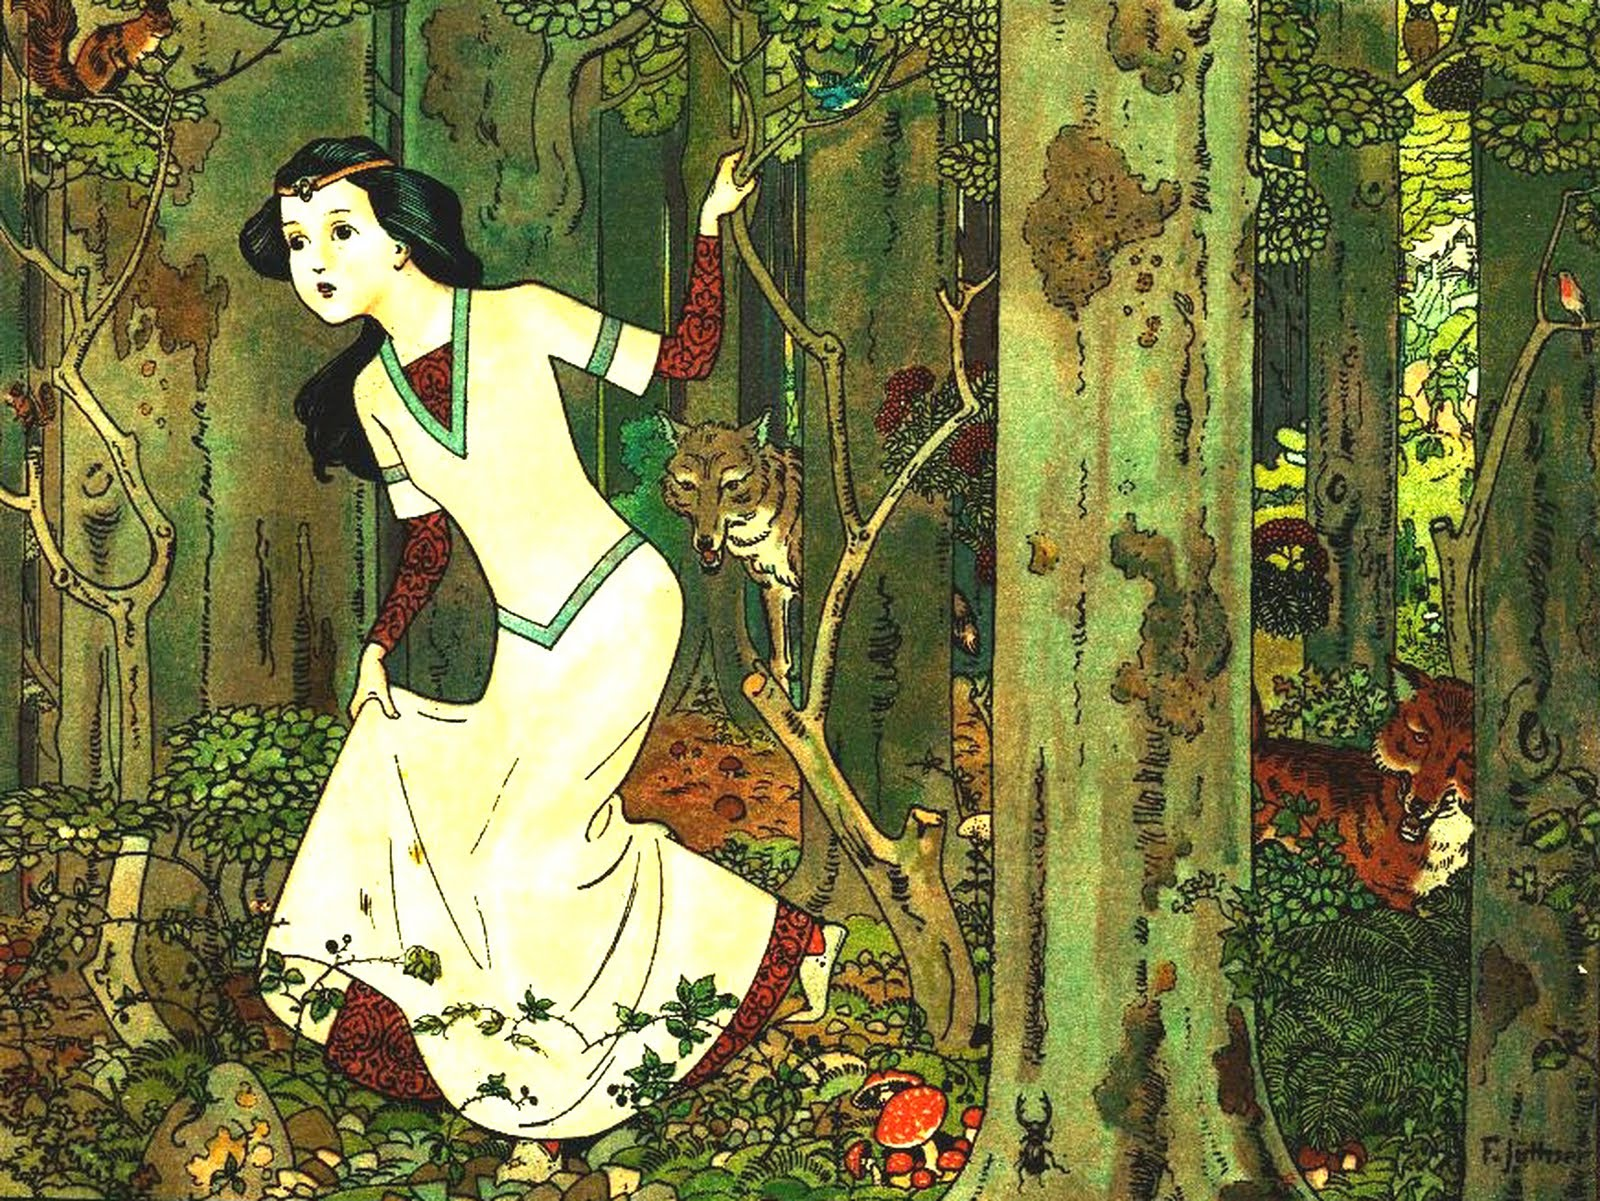 Snow White in the Woods